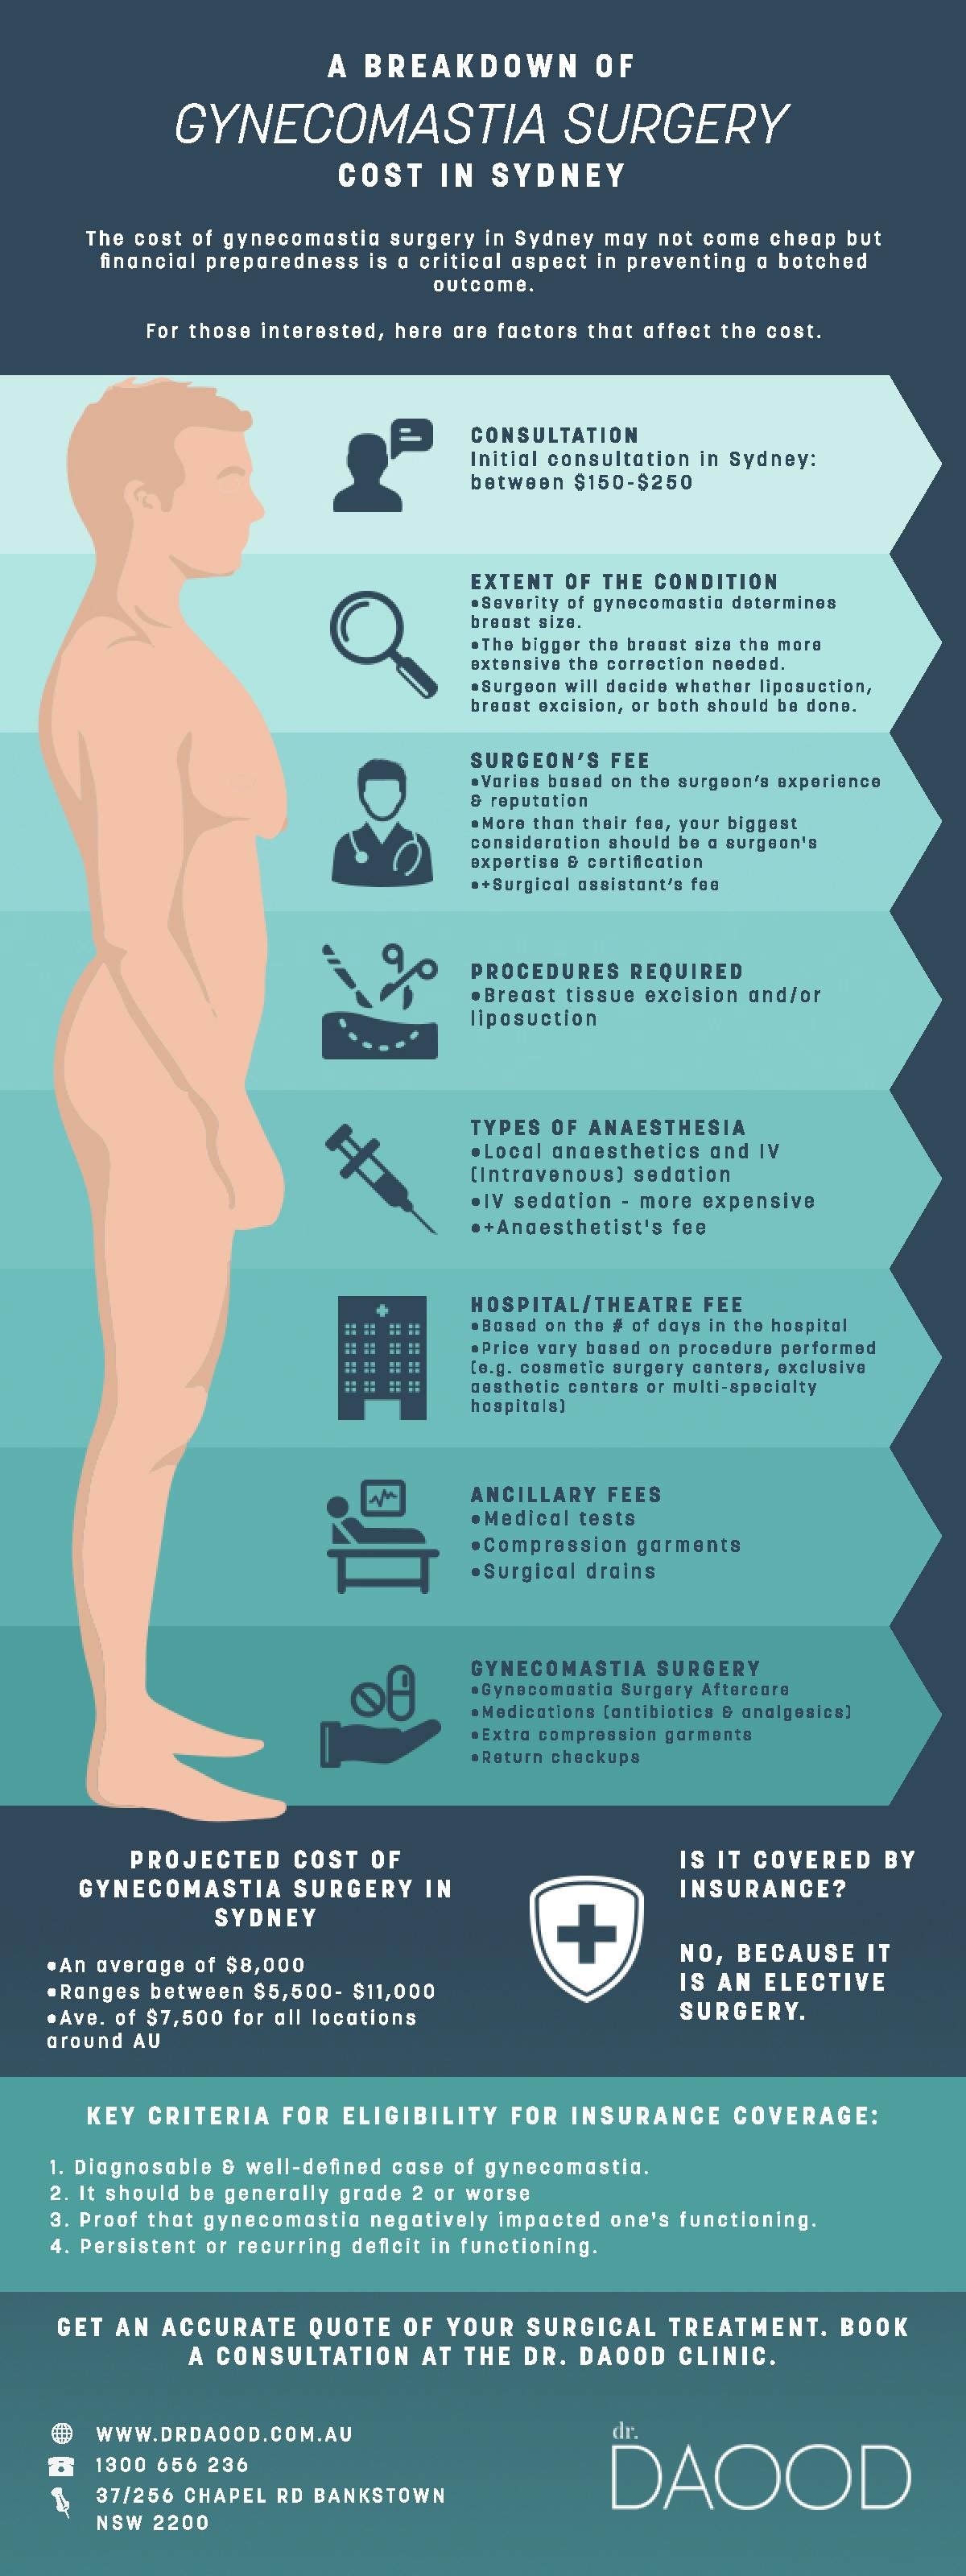 A Breakdown of Gynecomastia Surgery Cost in Sydney Infographic